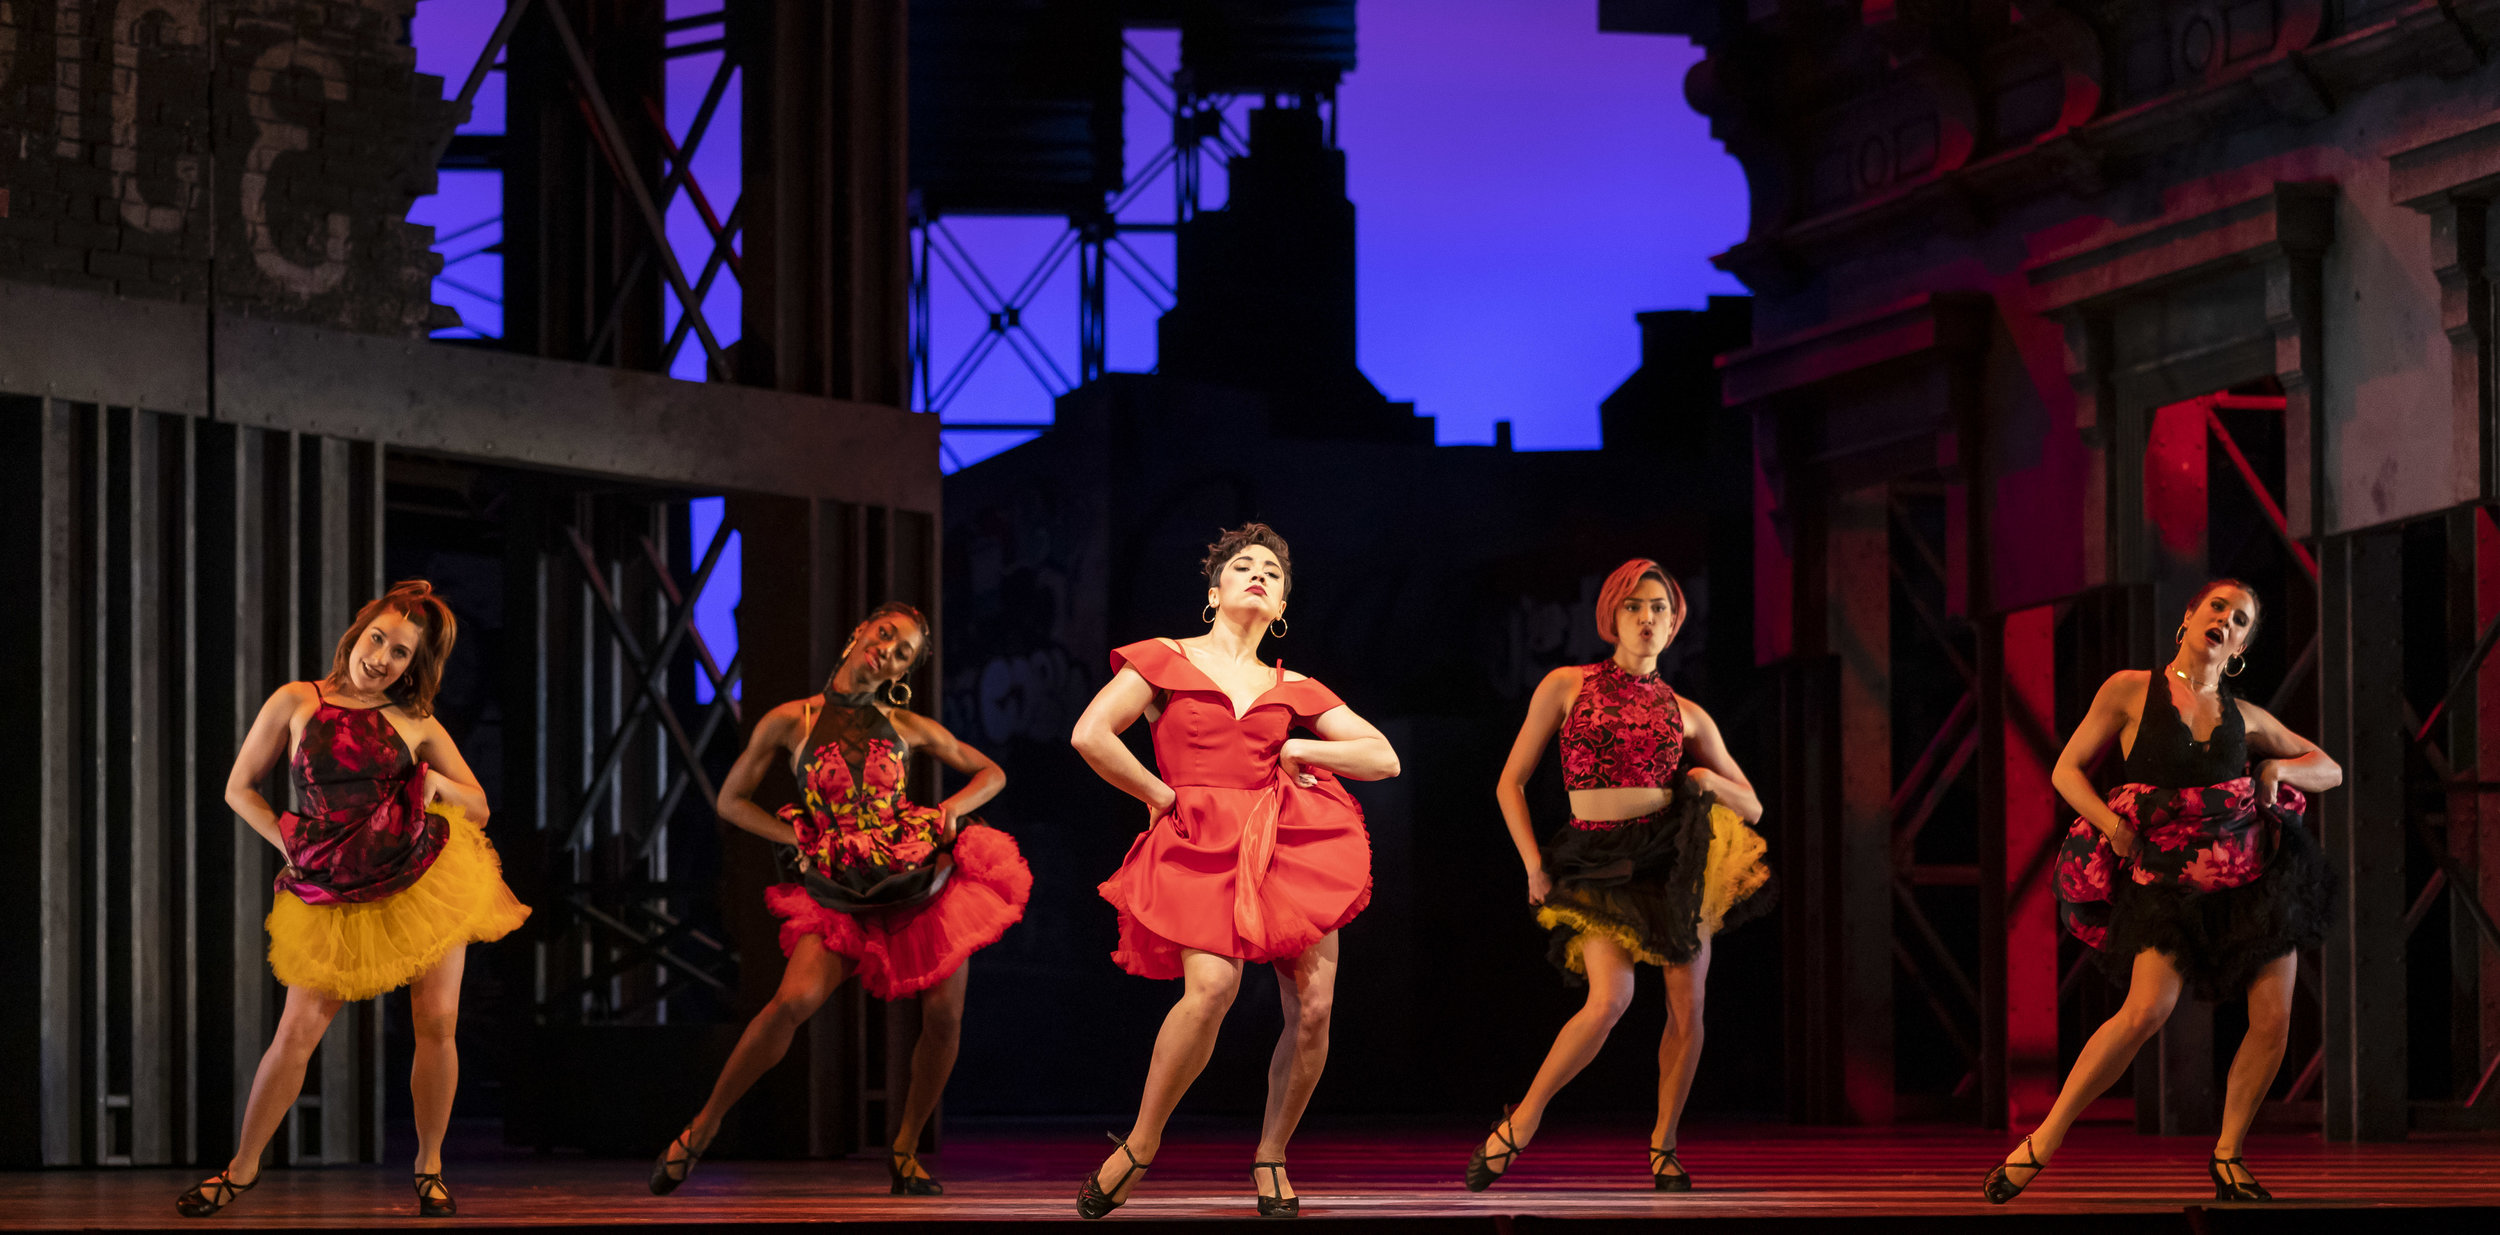 Amanda Castro in WEST SIDE STORY at Lyric Opera of Chicago. Photo by Todd Rosenberg